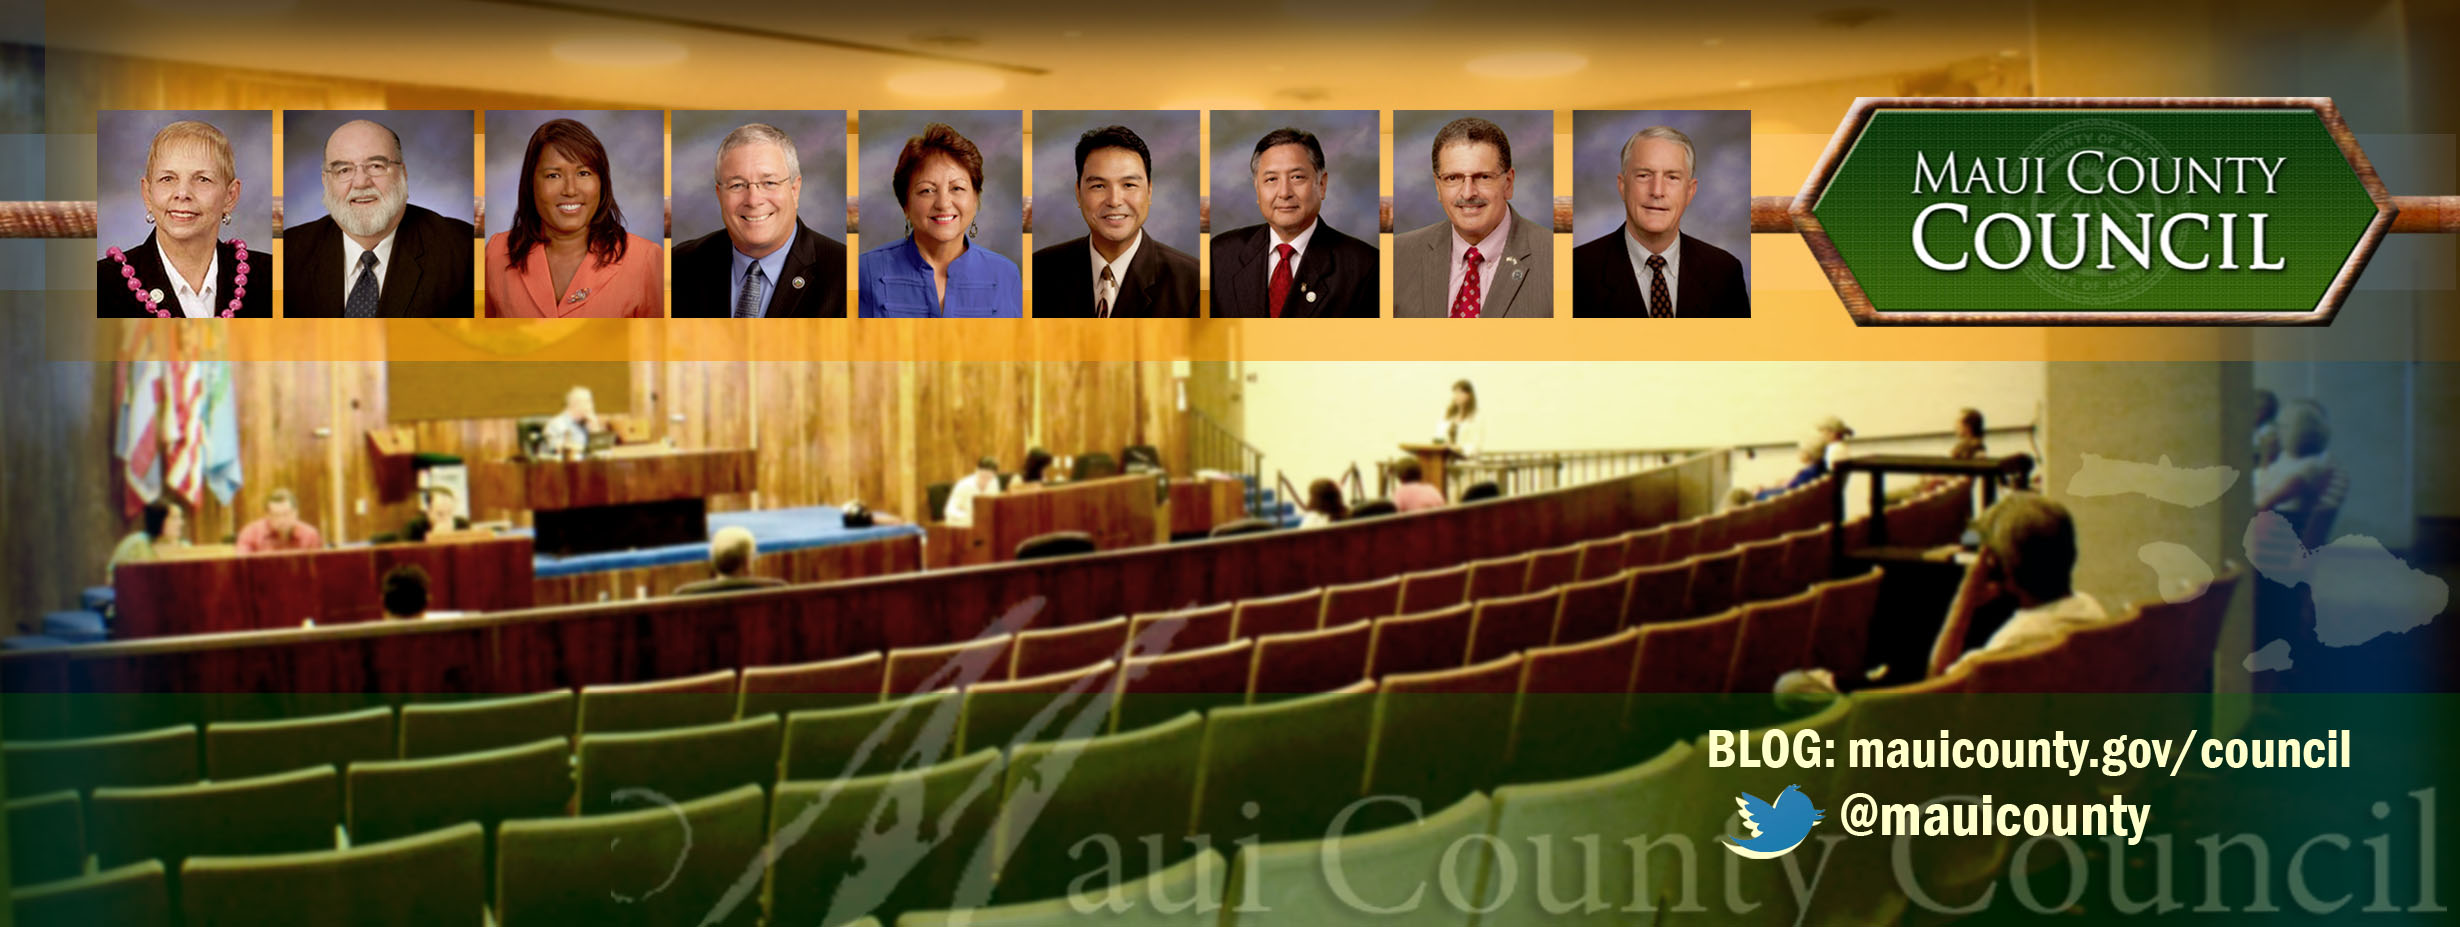 Maui County Council Facebook Header